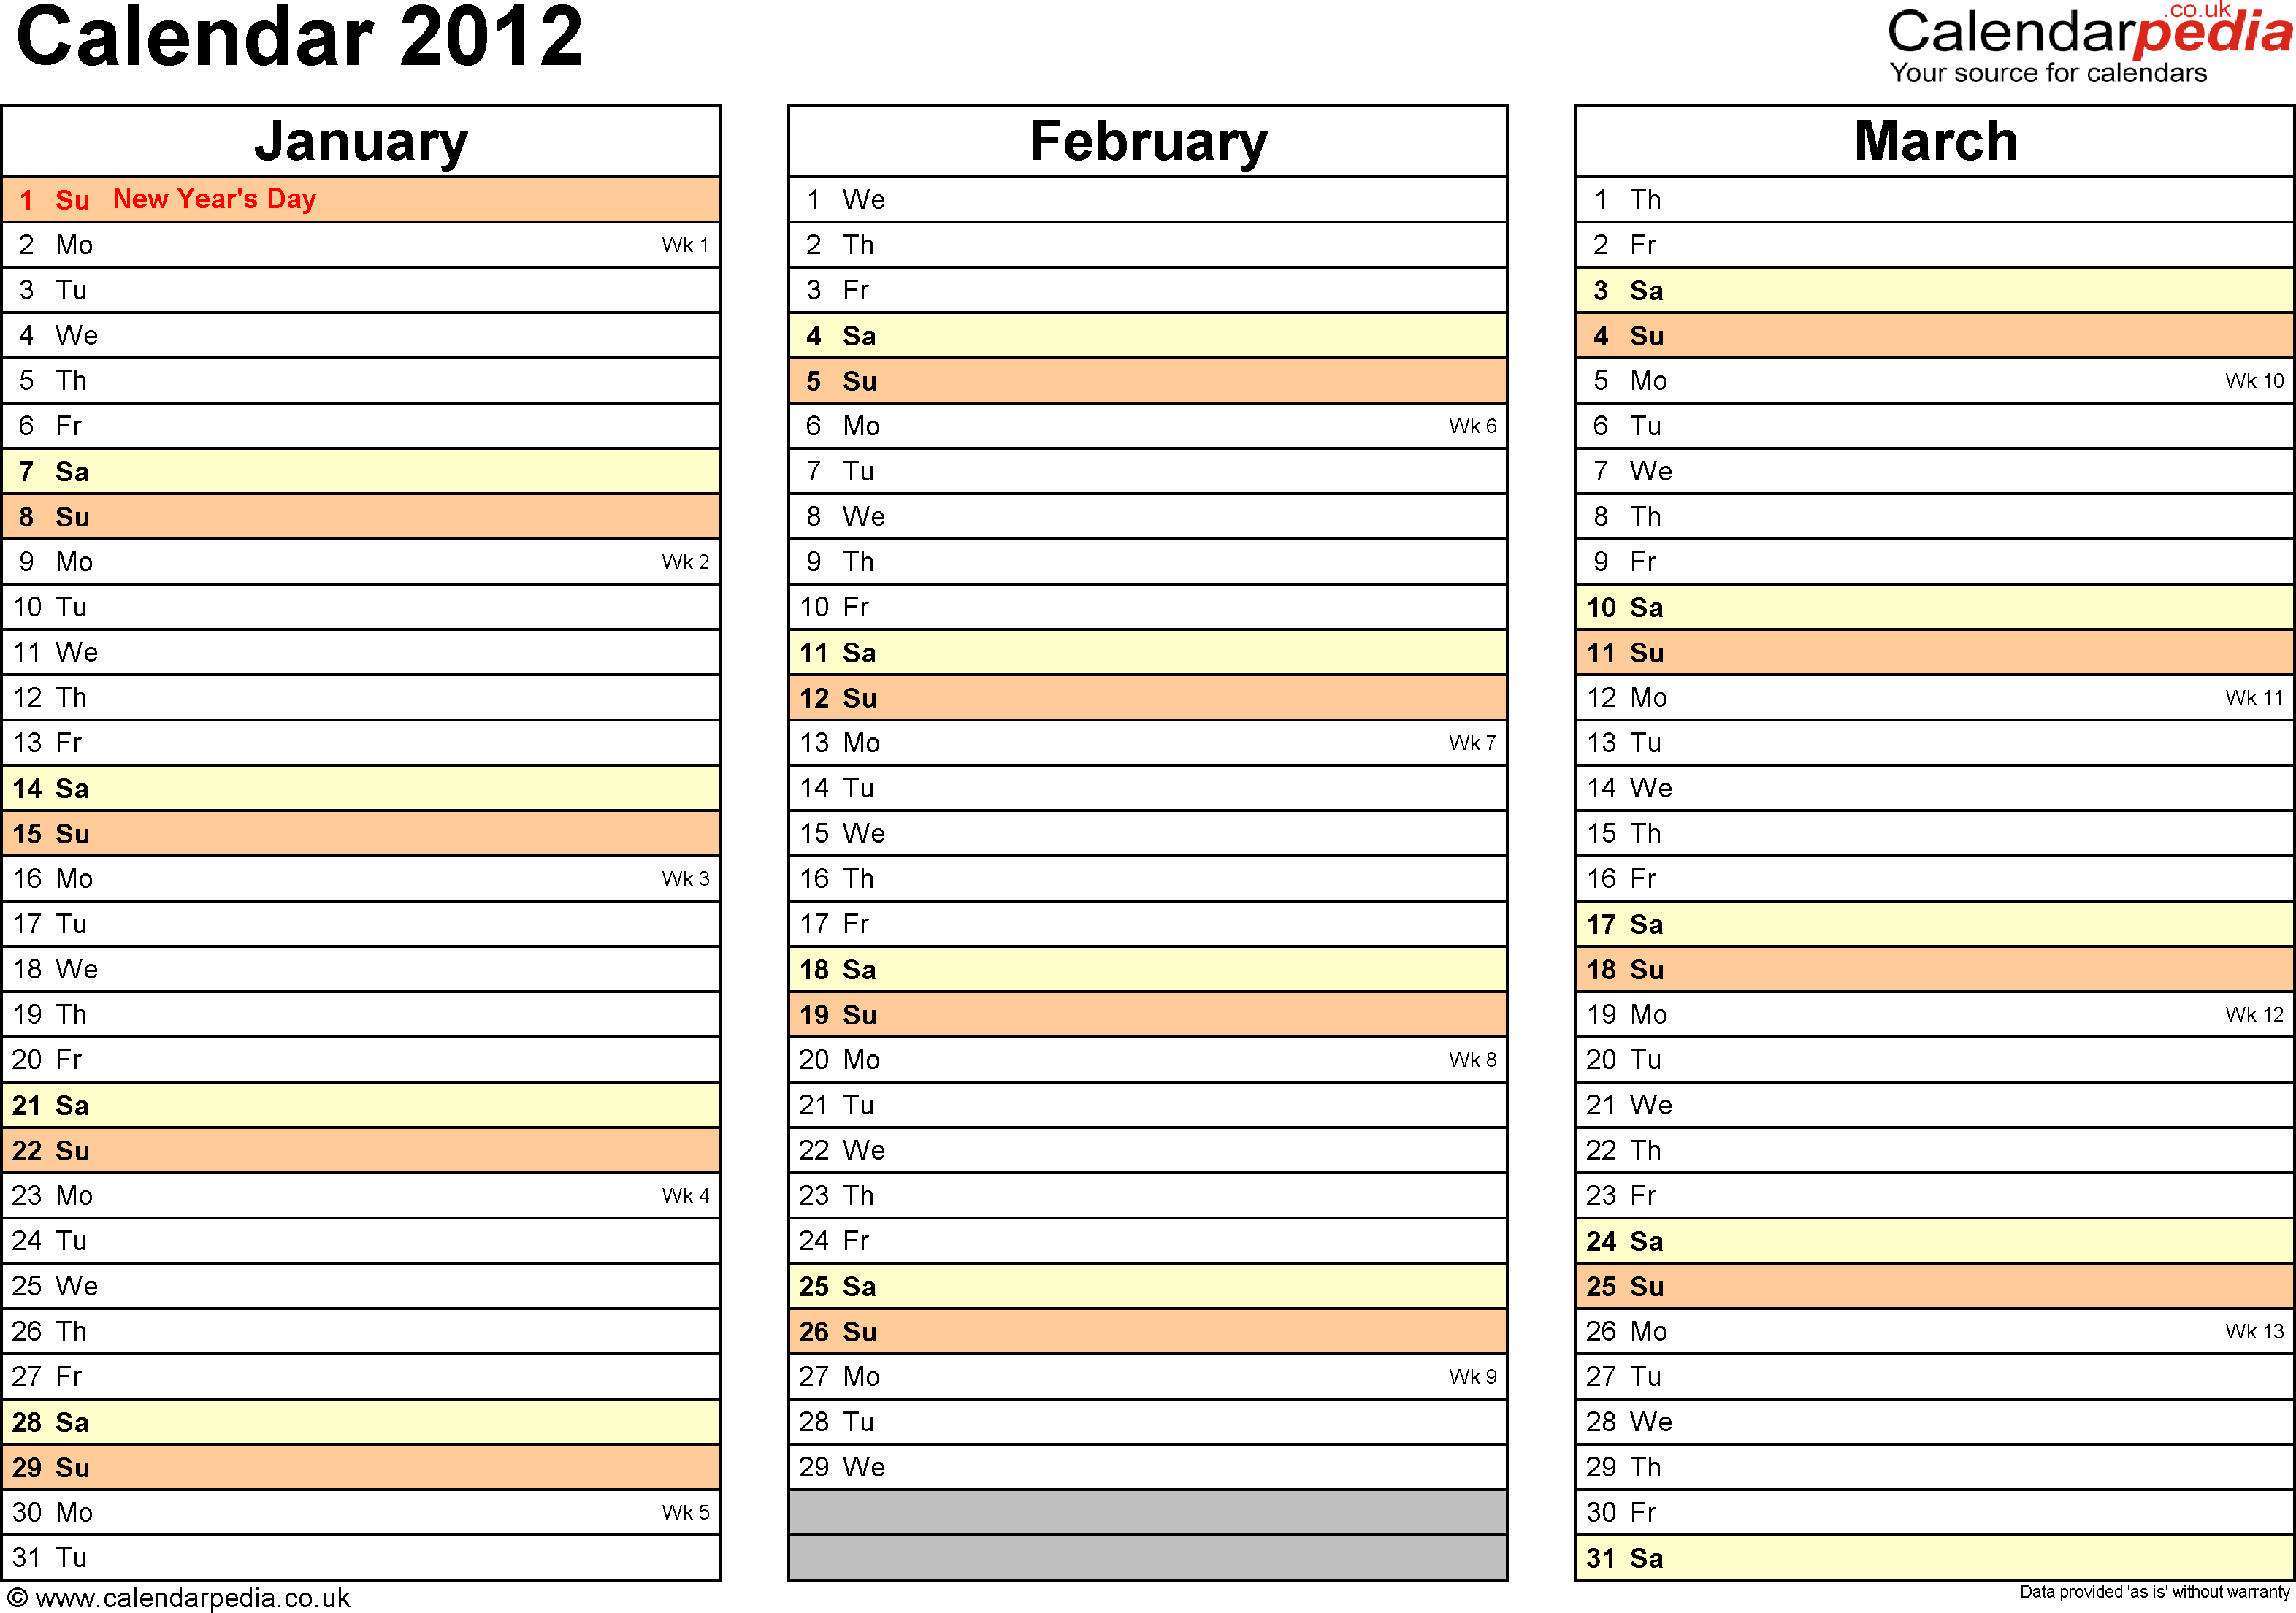 Template 6: Yearly calendar 2012 as Word template, landscape orientation, 4 pages, months horizontally, days vertically, with UK bank holidays and week numbers